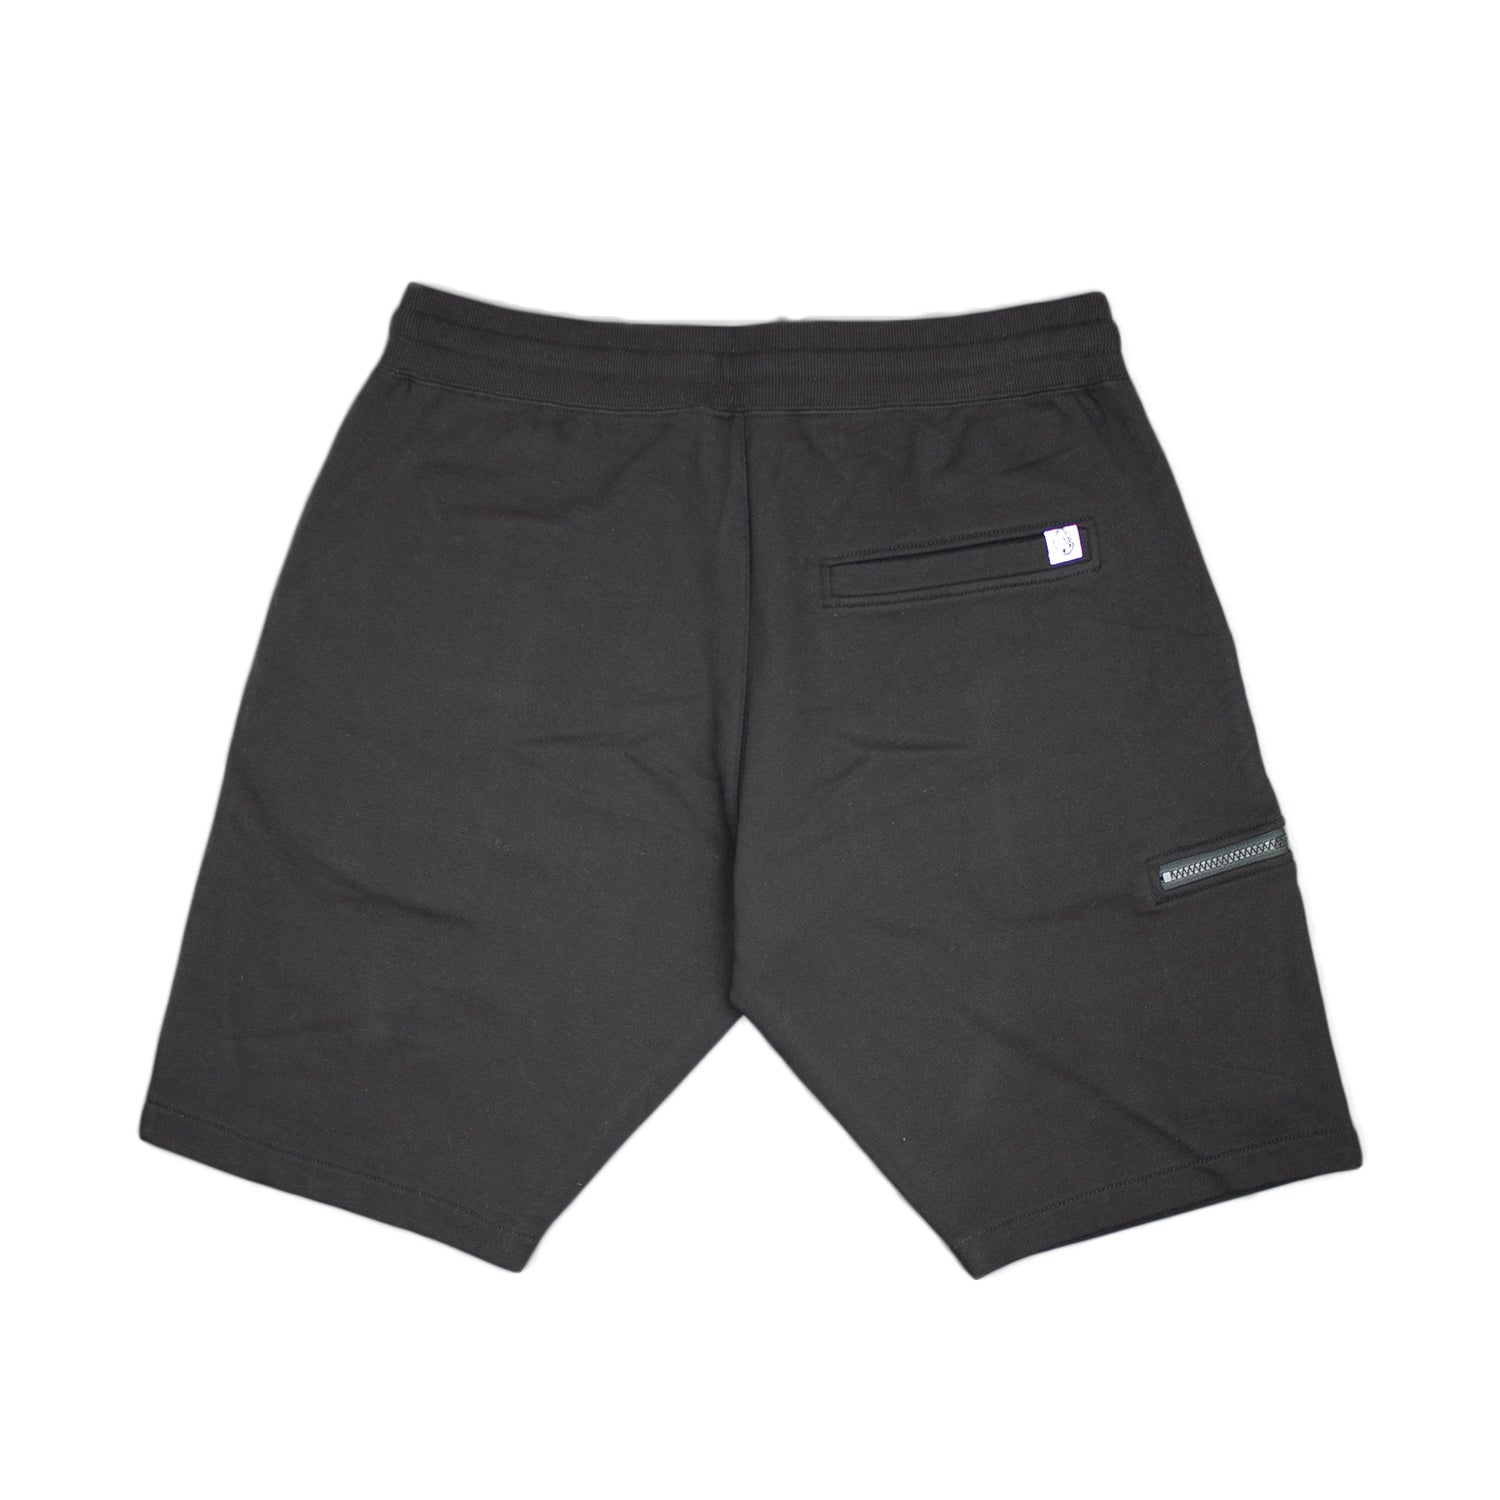 ARCH SHORT